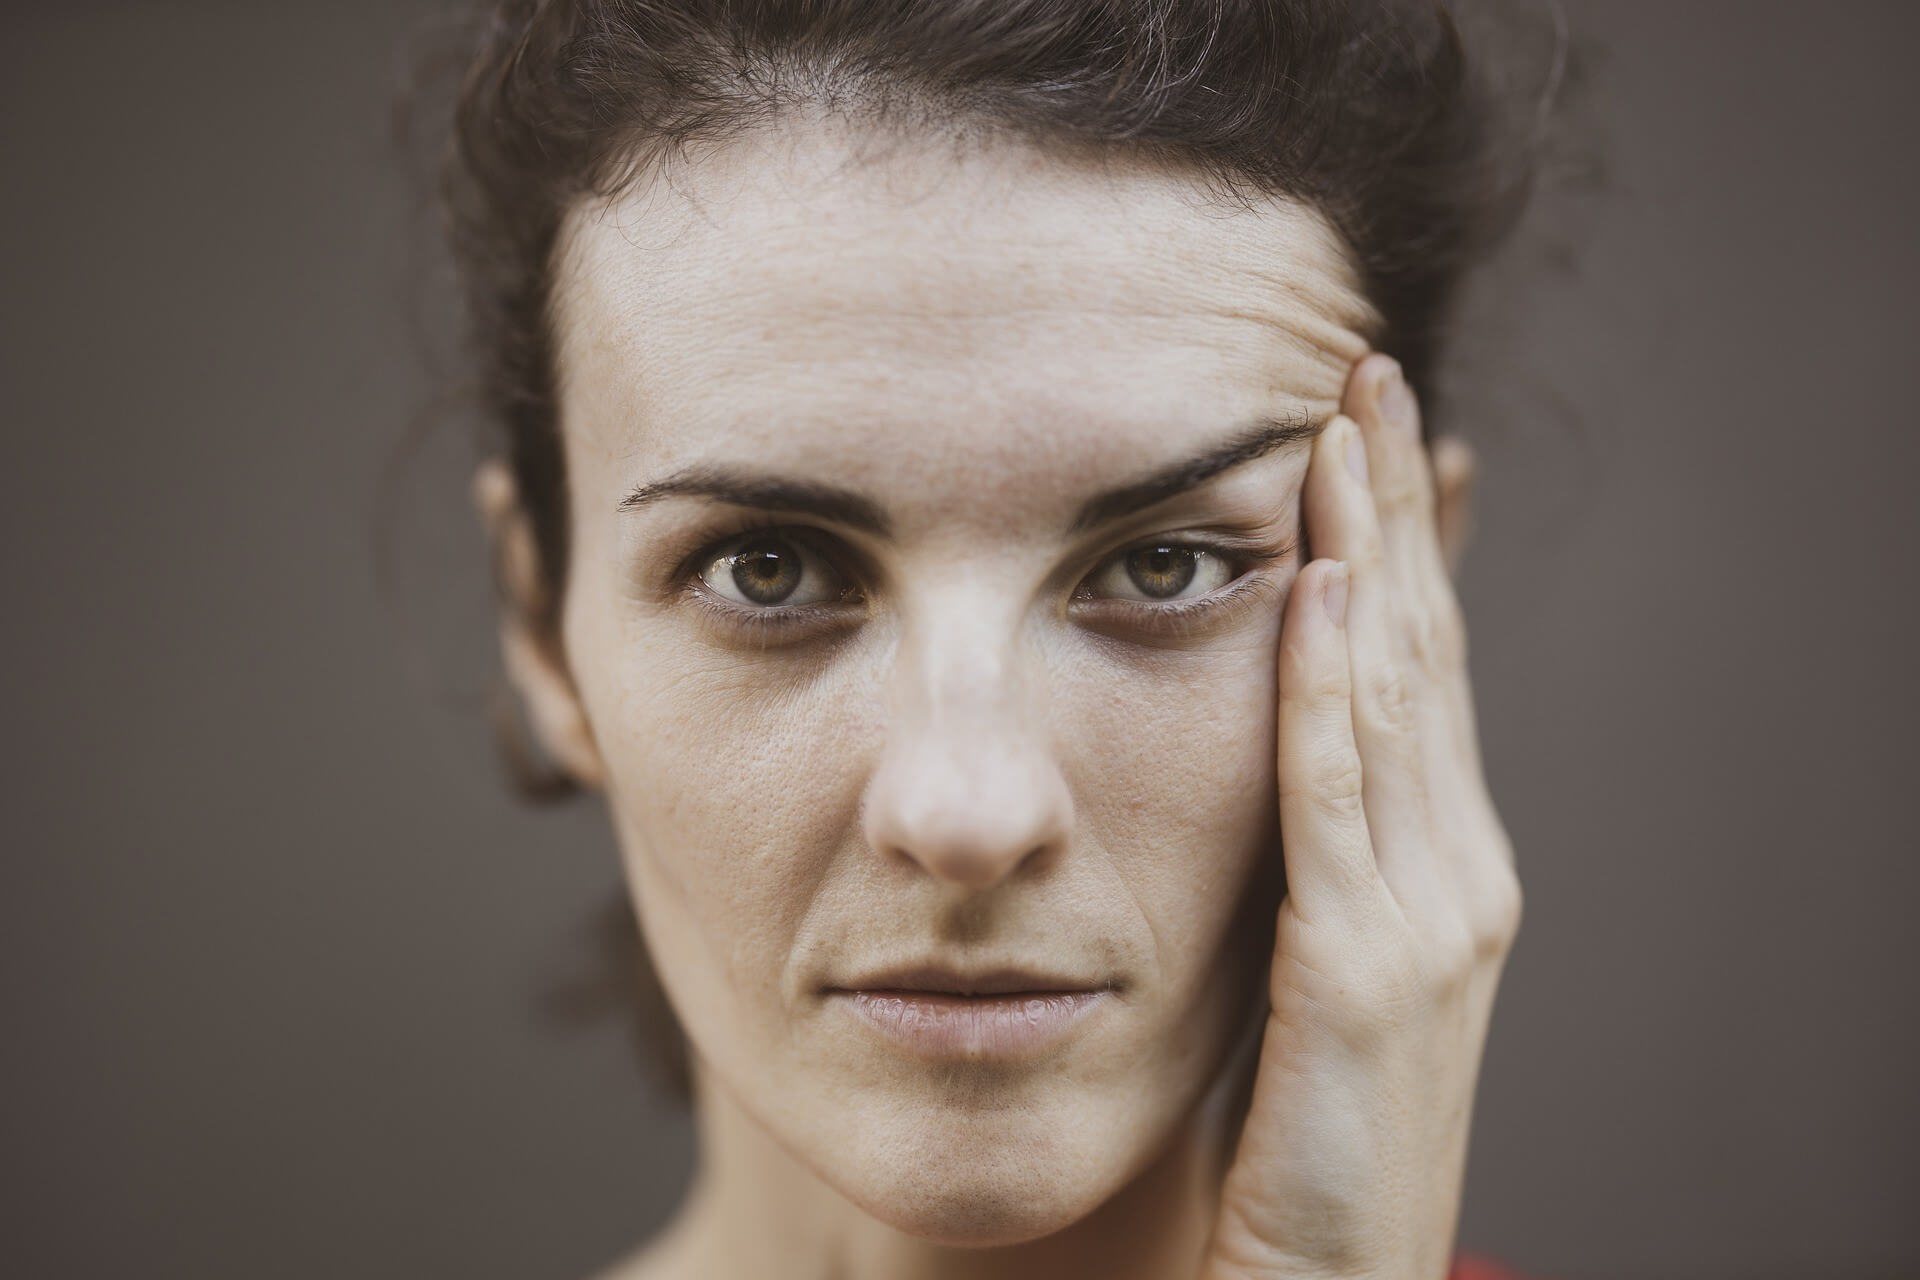 Issues Eye-Lift Surgery Can Solve - Dark Circles